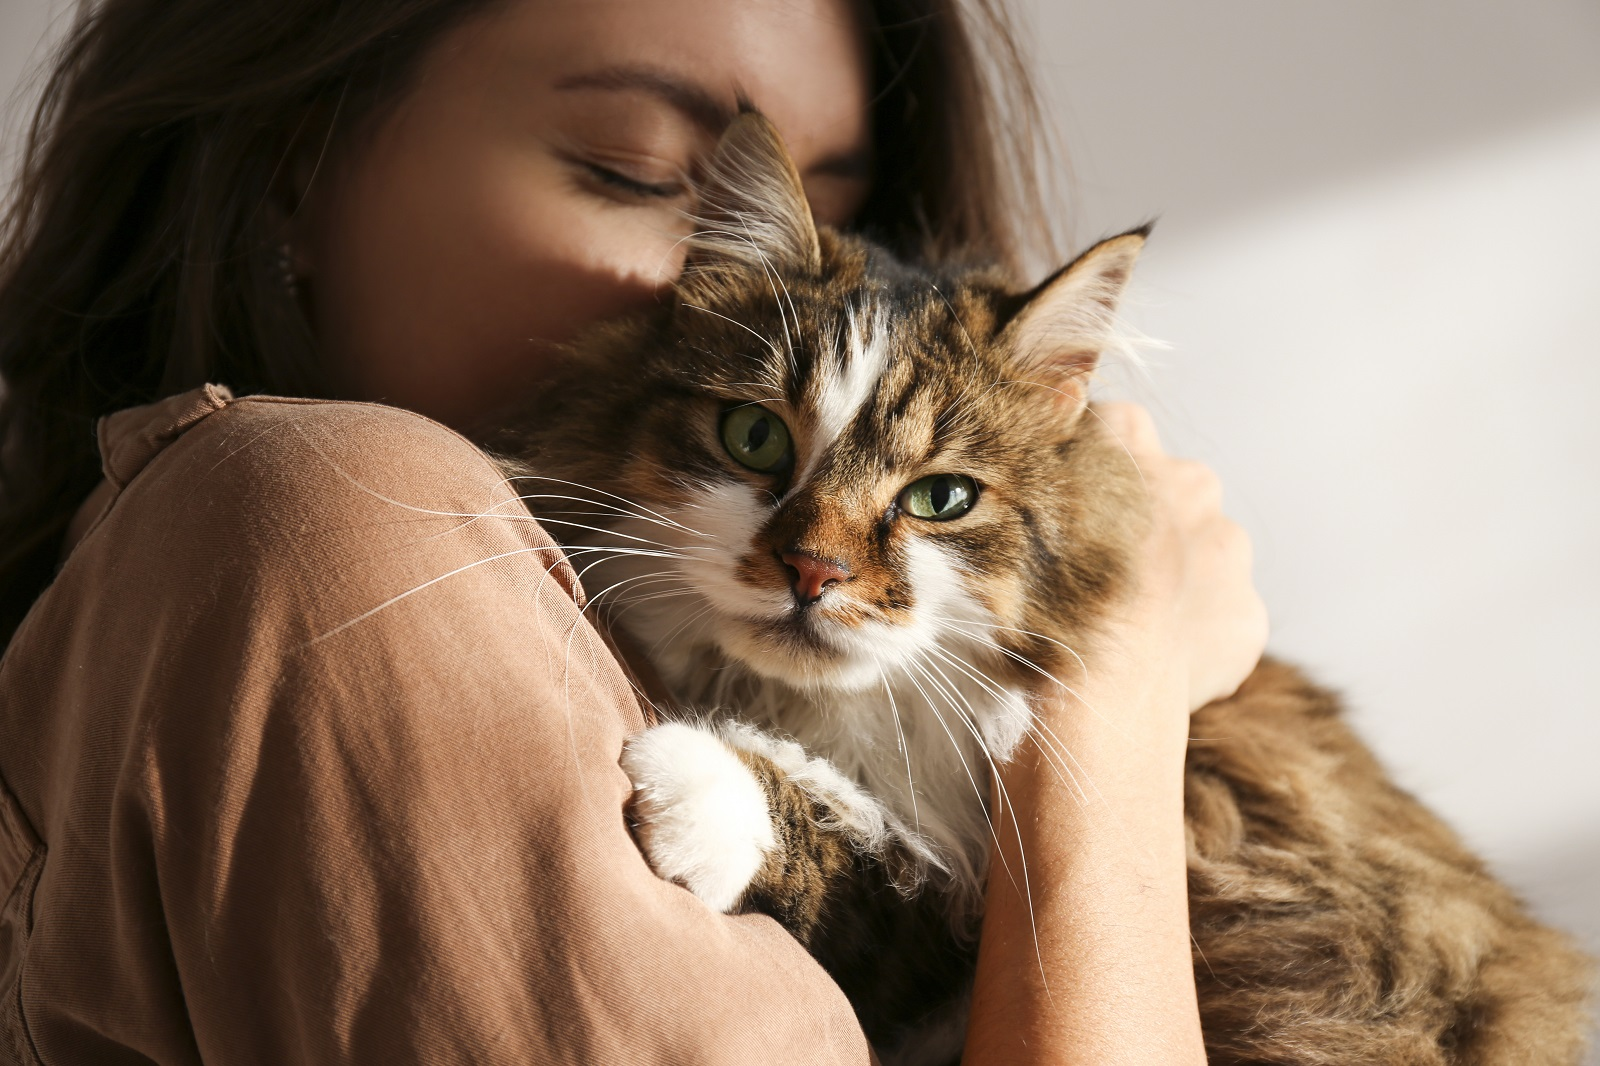 When is it Time? Understanding Your Pet's Pain as it Relates to Quality of Life